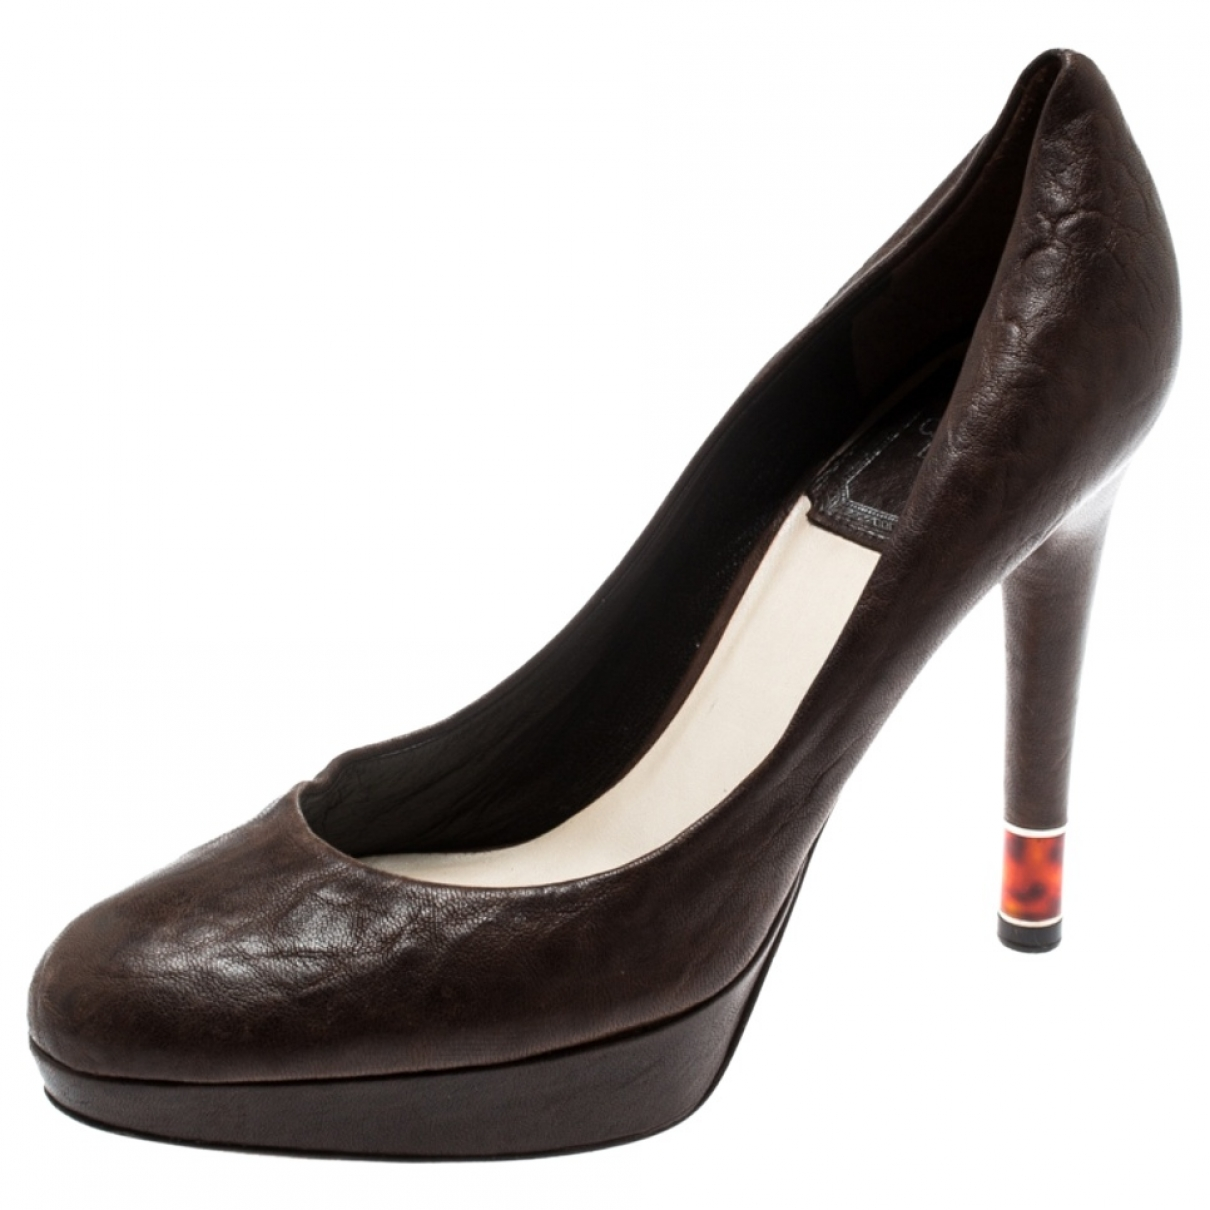 Dior \N Brown Leather Heels for Women 36 EU